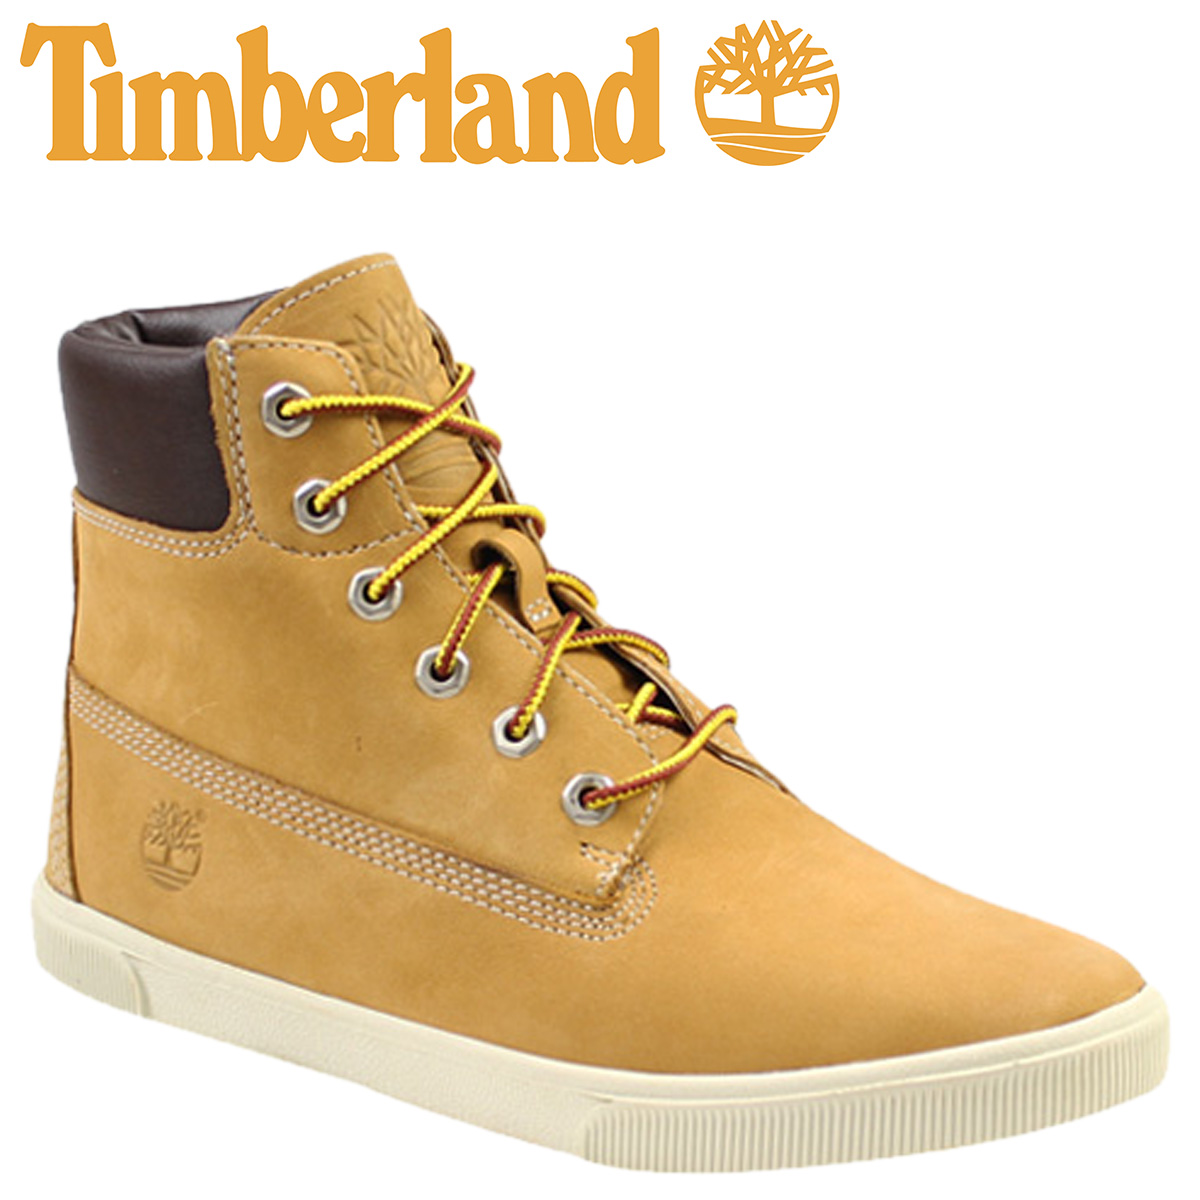 SOLD OUT  Timberland Timberland Womens junior Earthkeepers slim Cup sole  boot JUNIOR EK SLIM CUPSOLE nubuck 6797R wheat 1c7f5e6cd